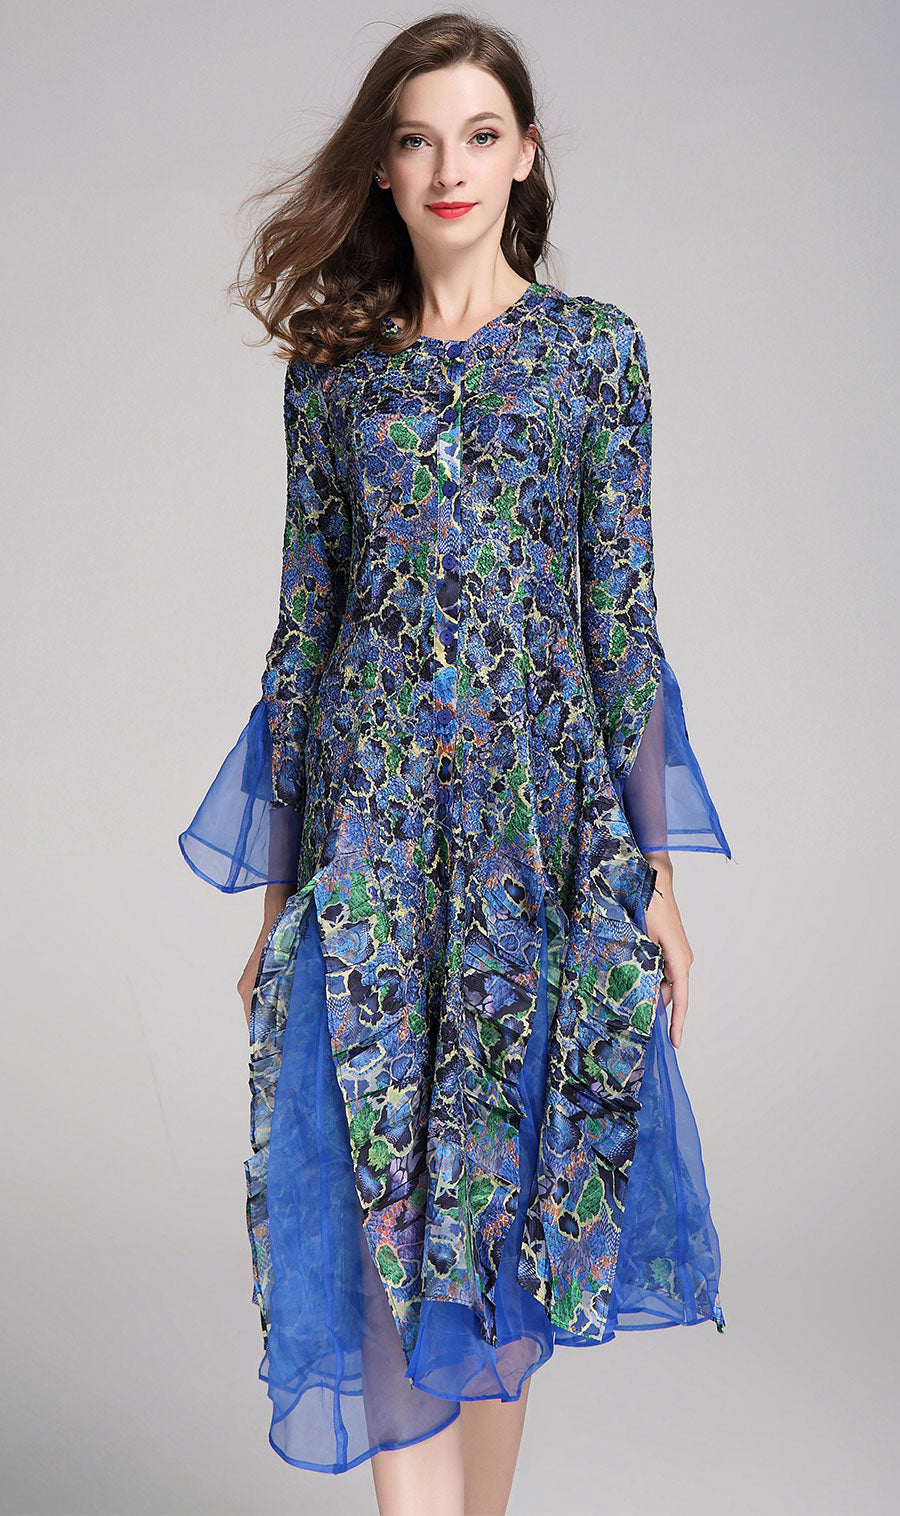 Jerry T Dress SR113-Blue/Flower - Church Suits For Less